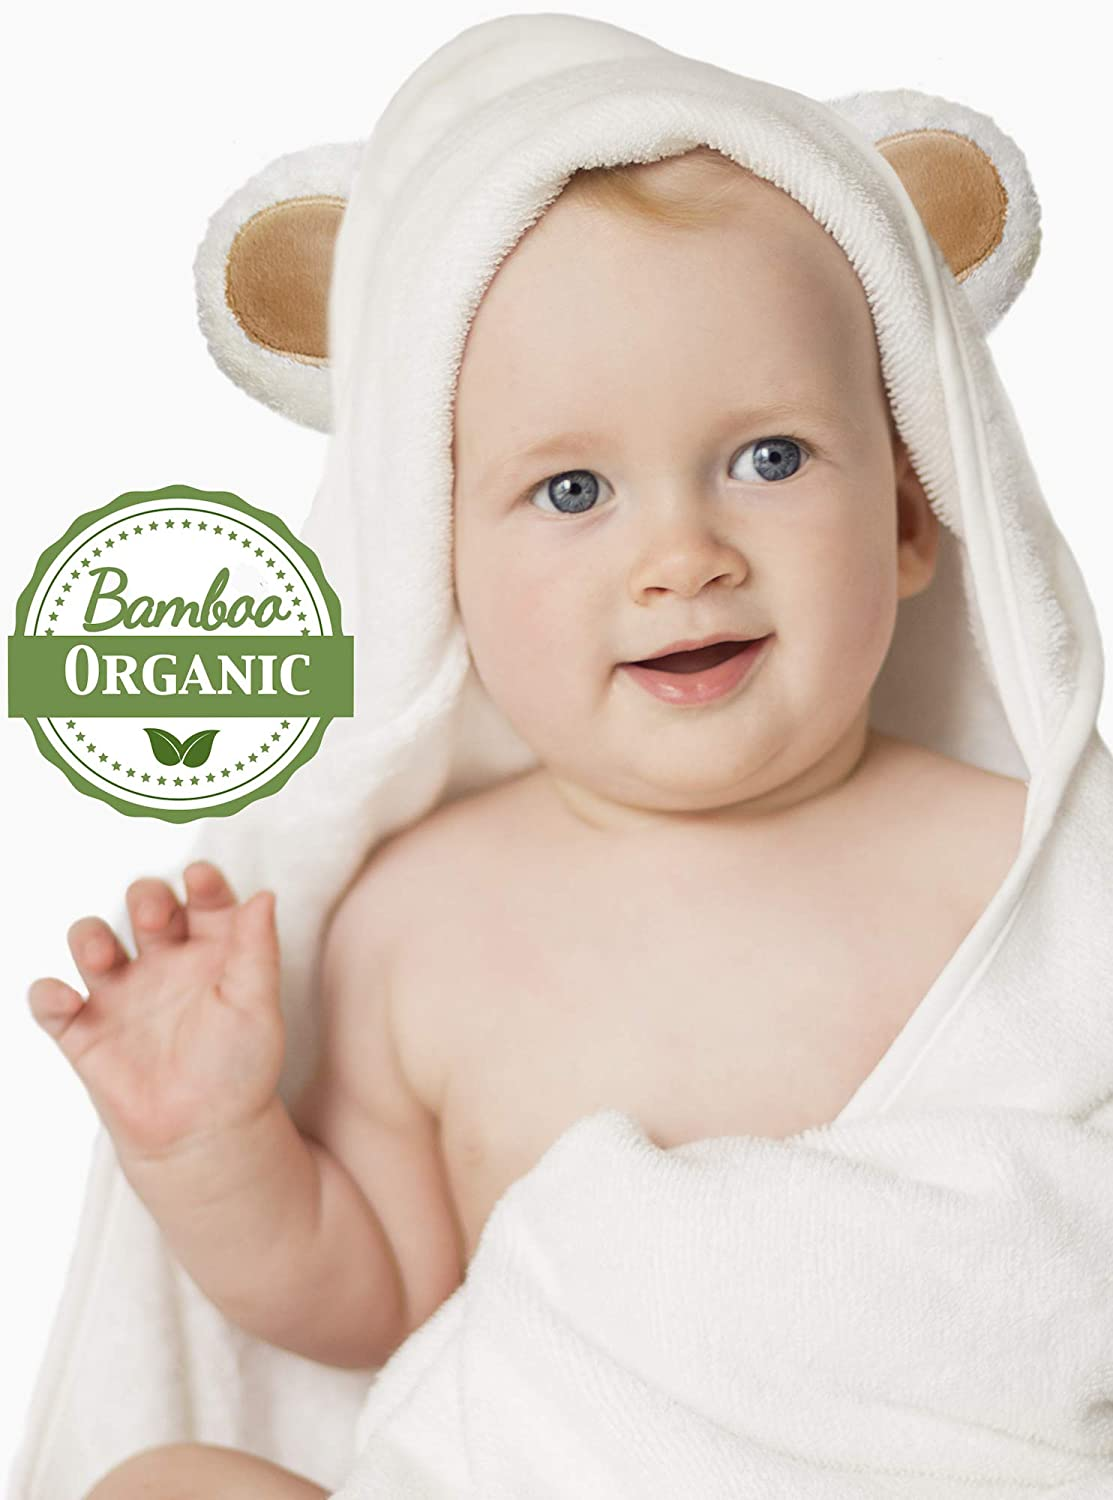 Premium Ultra Soft Organic Bamboo Baby Hooded Towels and Washcloth Set - Cute Bear Ears - Large Baby Bath Towels for Newborns Infants and Toddlers - Kids Towel with Hood for Boys or Girls Bahama Mama Silky Grey Ears